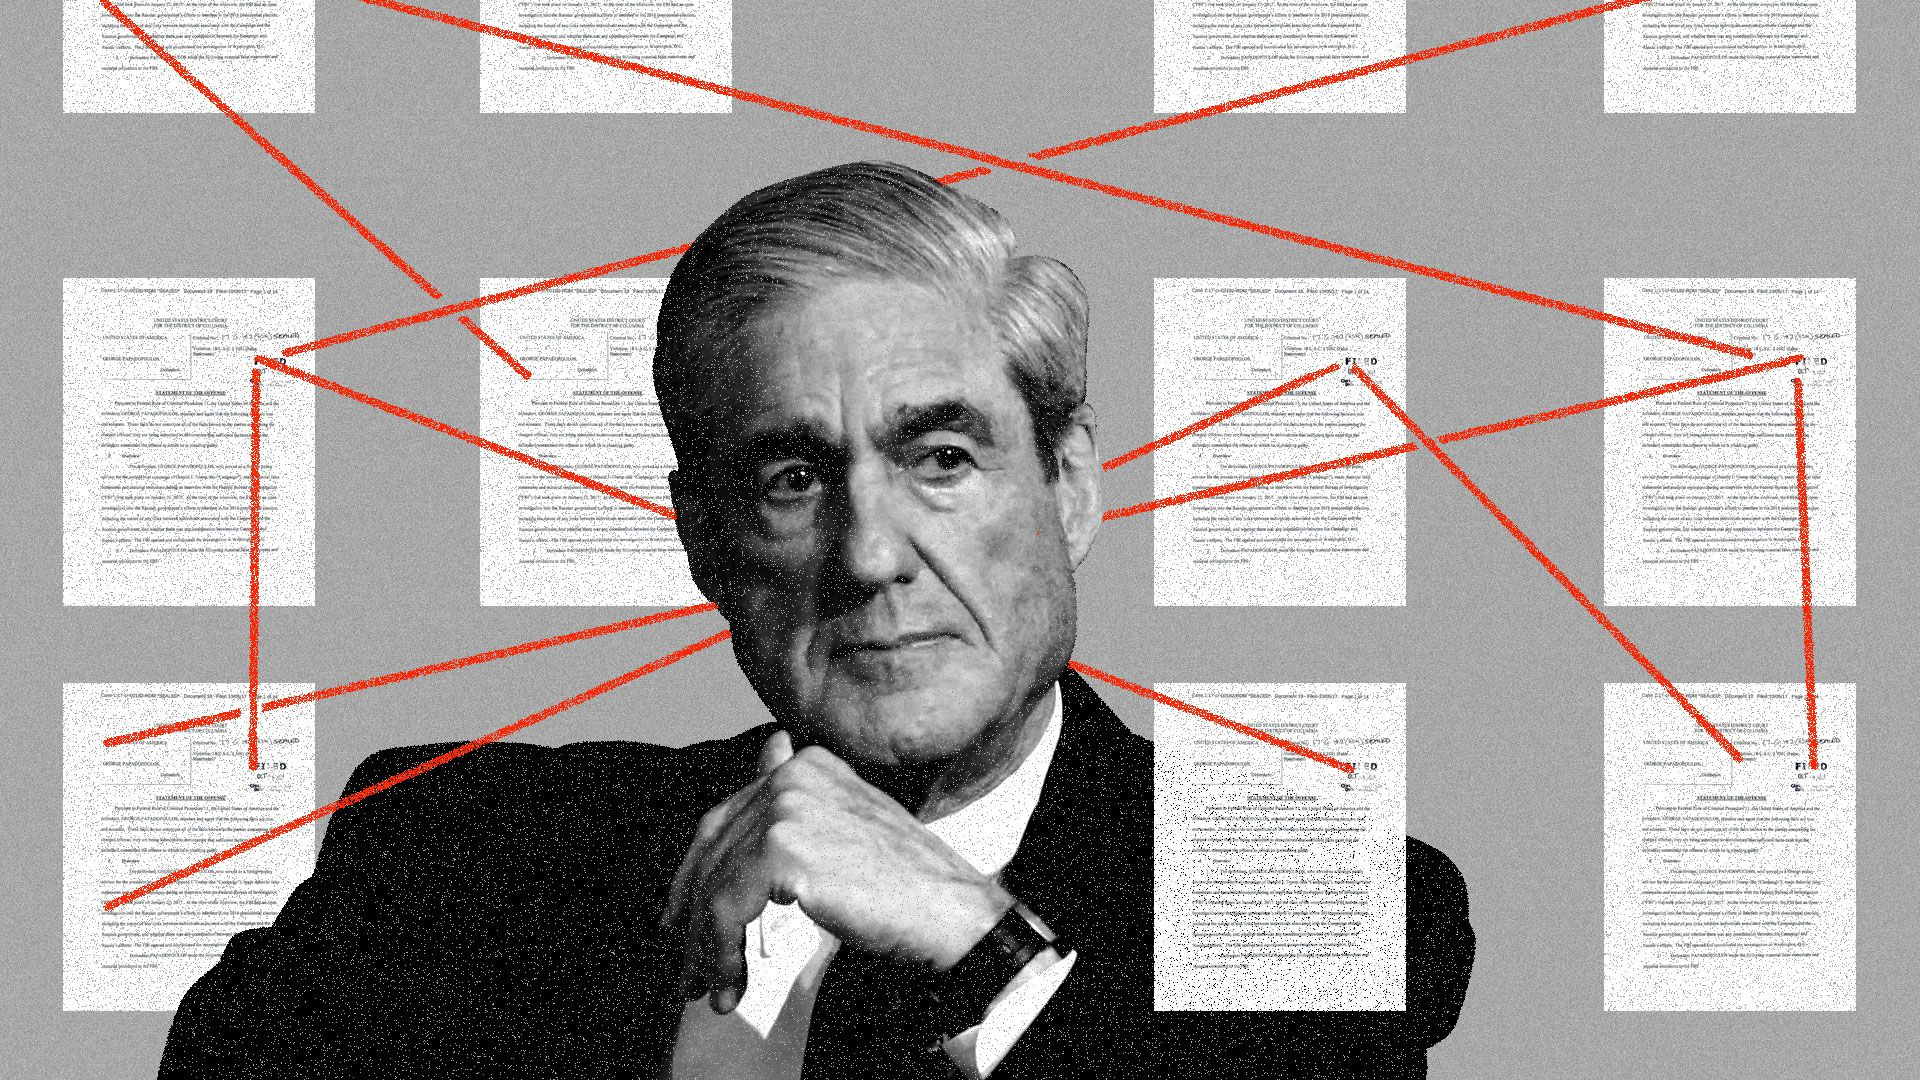 Mueller's breadcrumbs suggest he has the goods